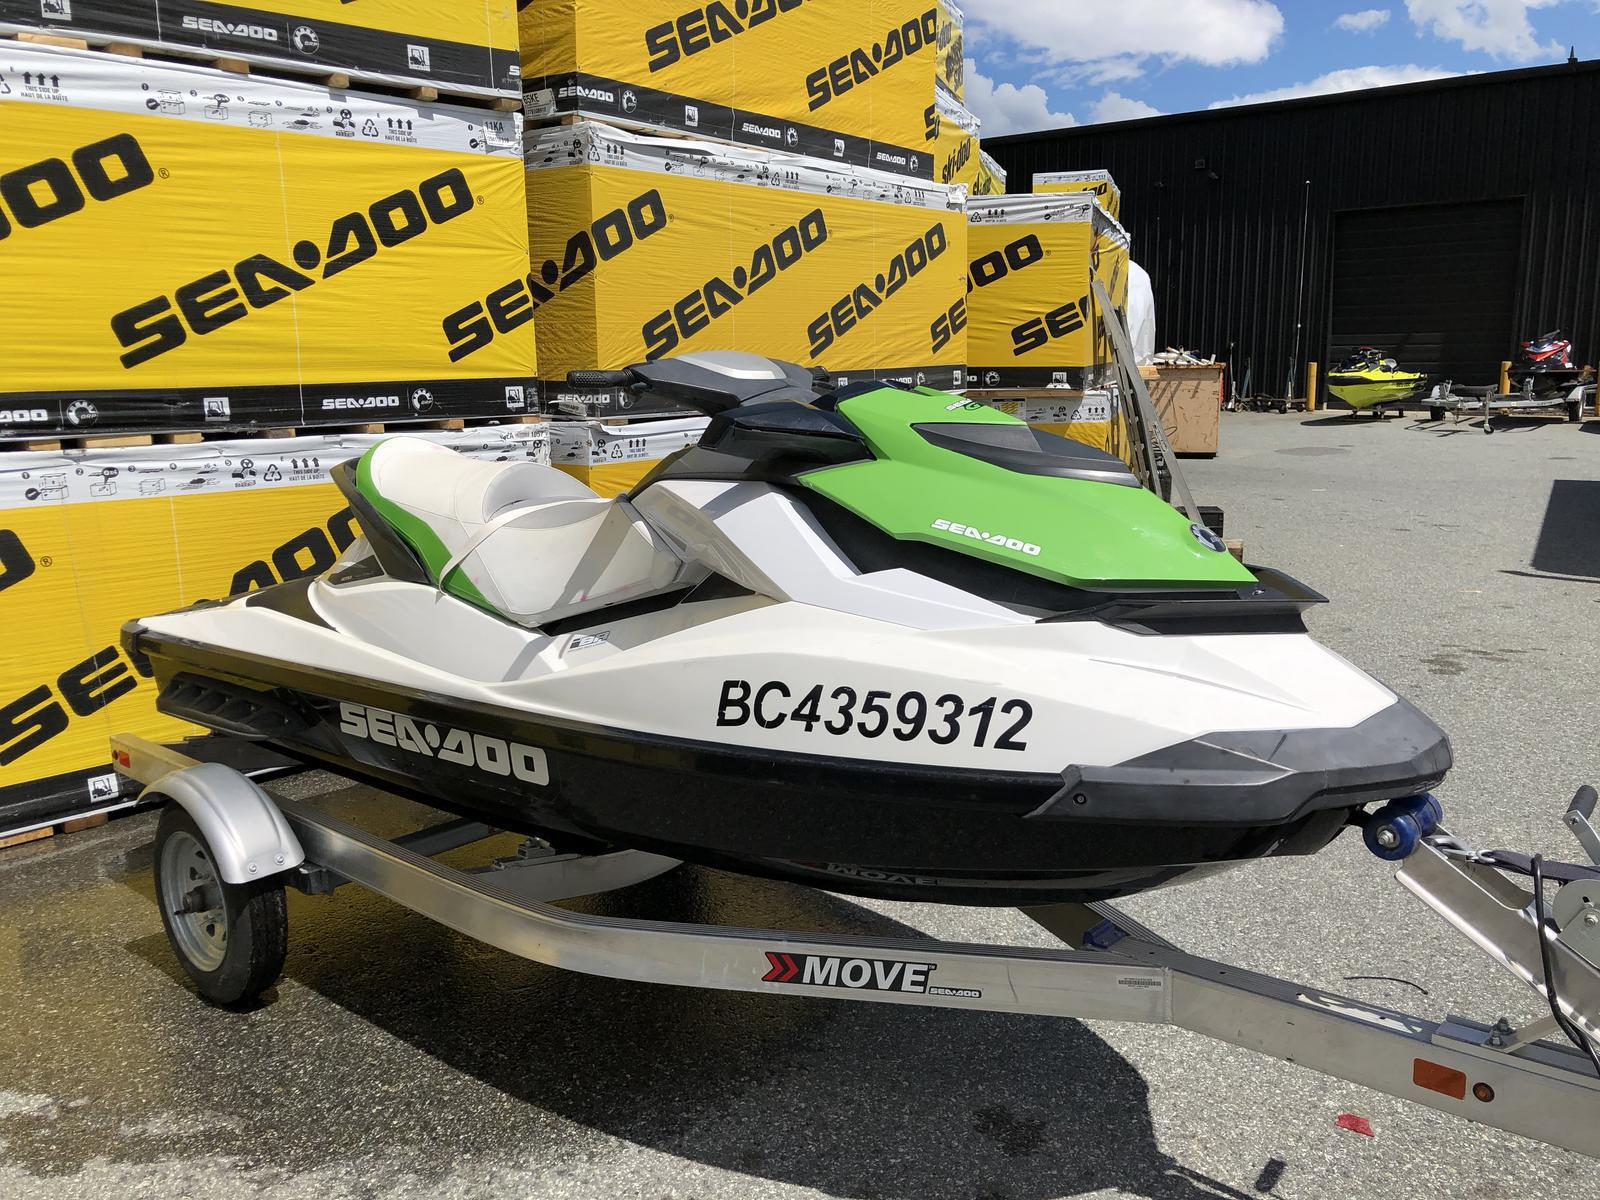 2013 Sea-Doo PW GTI 130 W/LG 13 for sale in Squamish, BC  No Limits